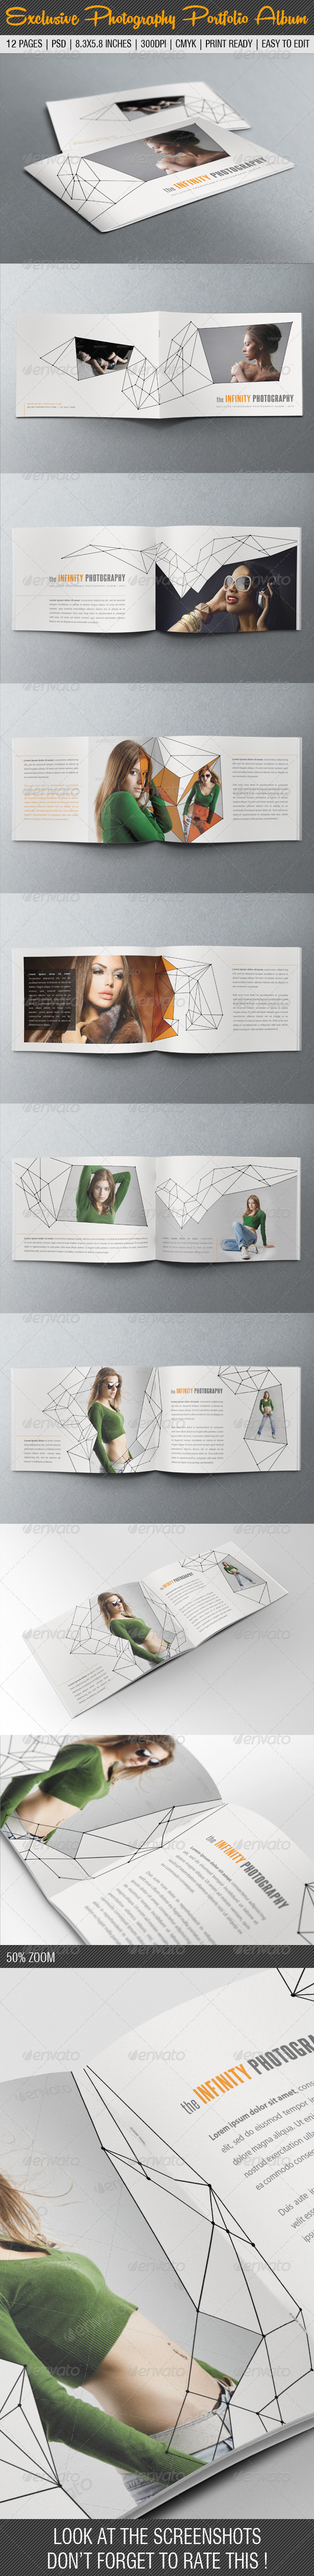 Exclusive Photography Portfolio Album 02 - Photo Albums Print Templates